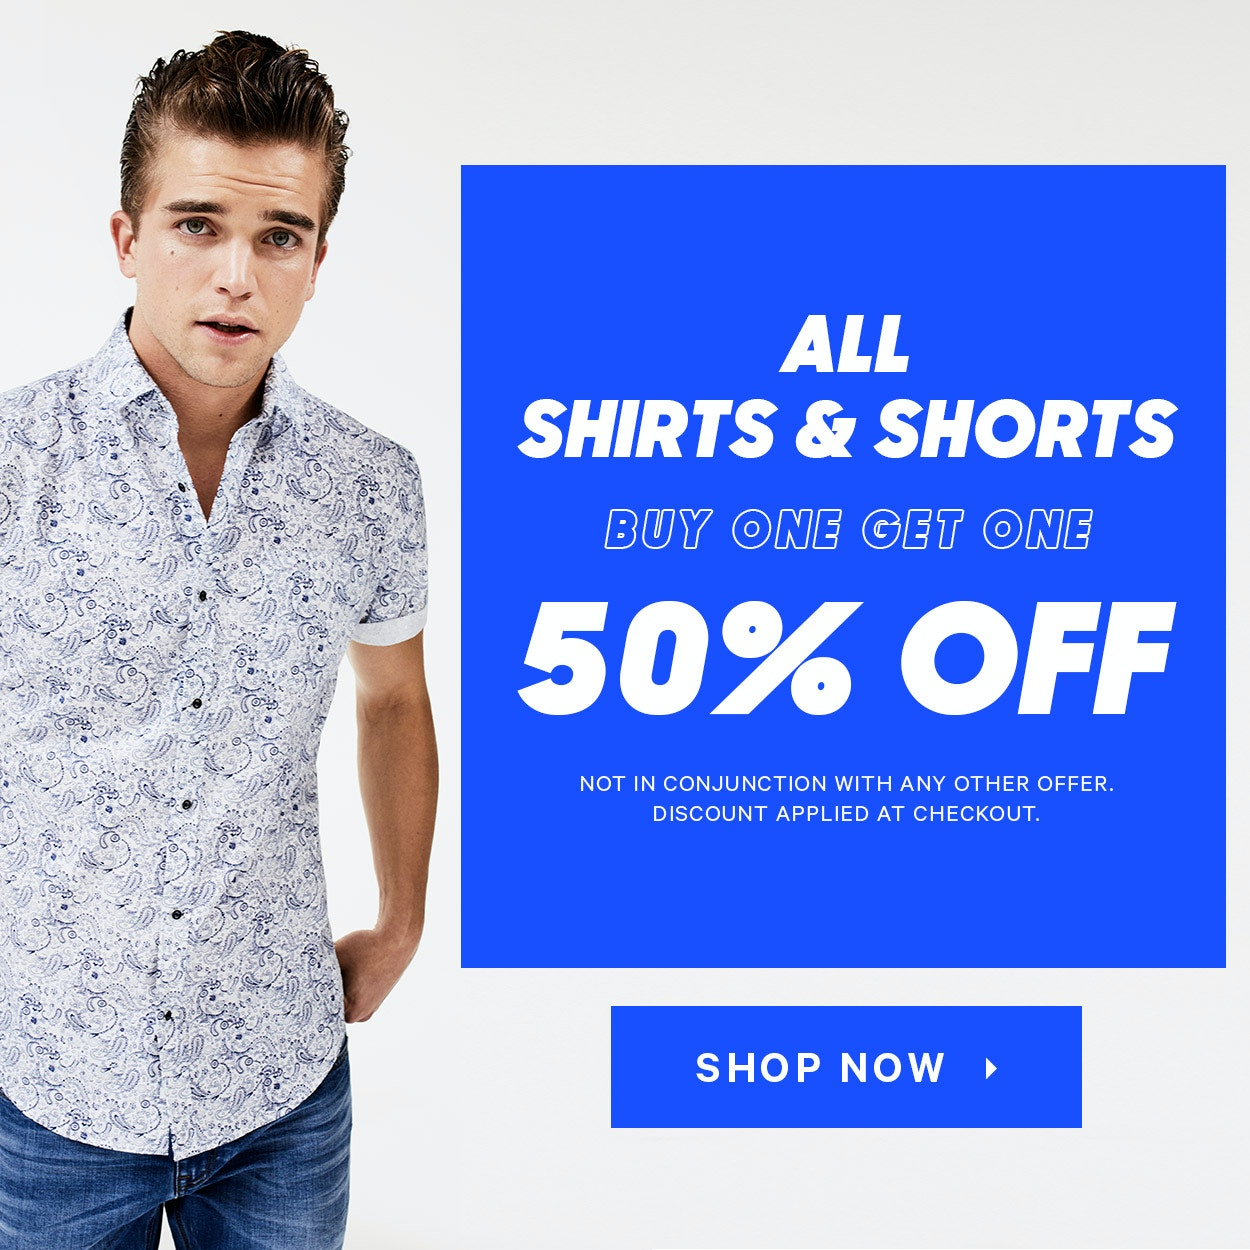 Buy one, get one 50% off shirts and shorts